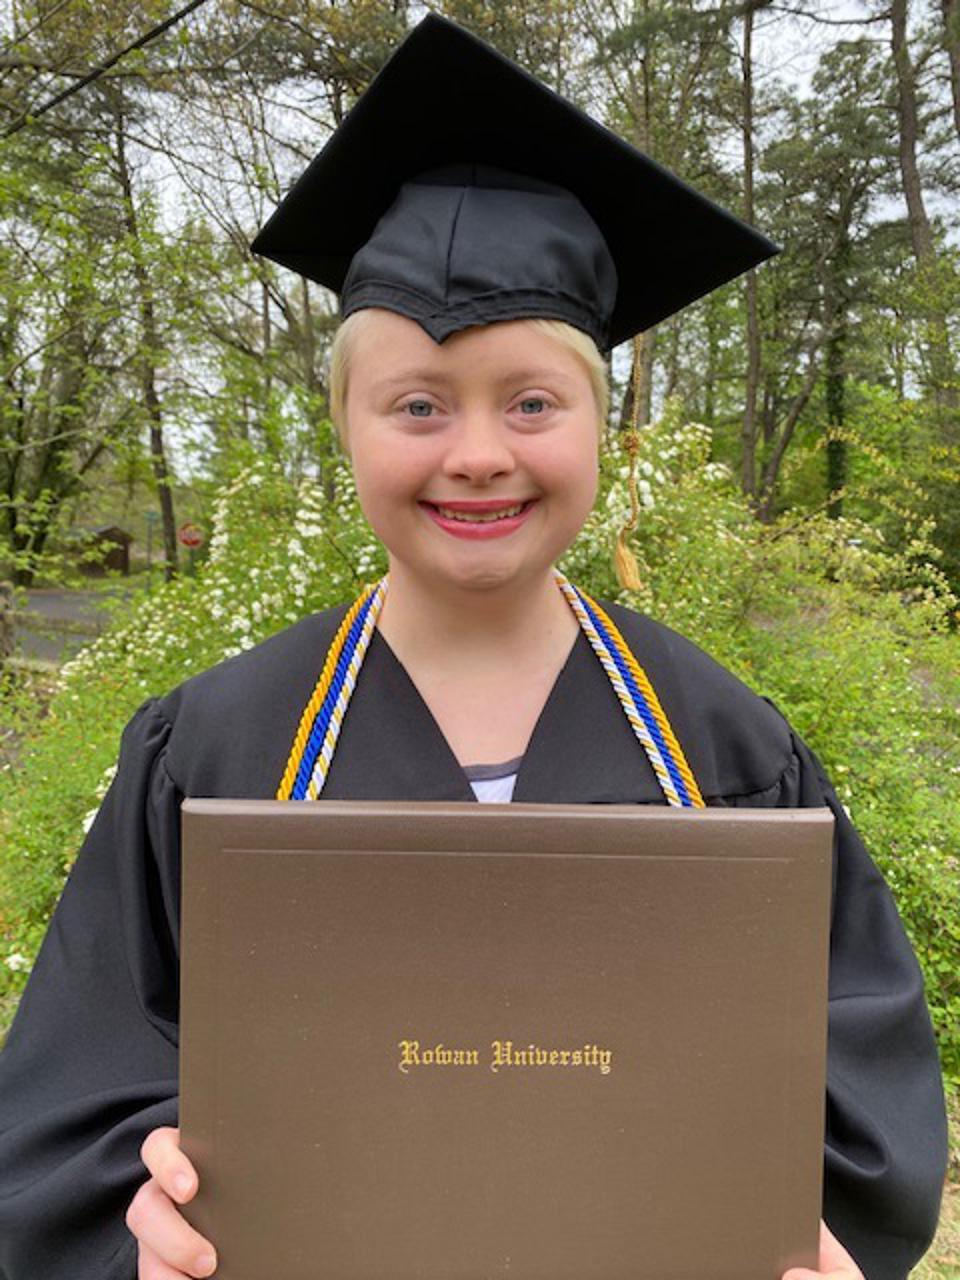 AnnaRose Rubright in her cap and gown holding her Rowan University diploma.